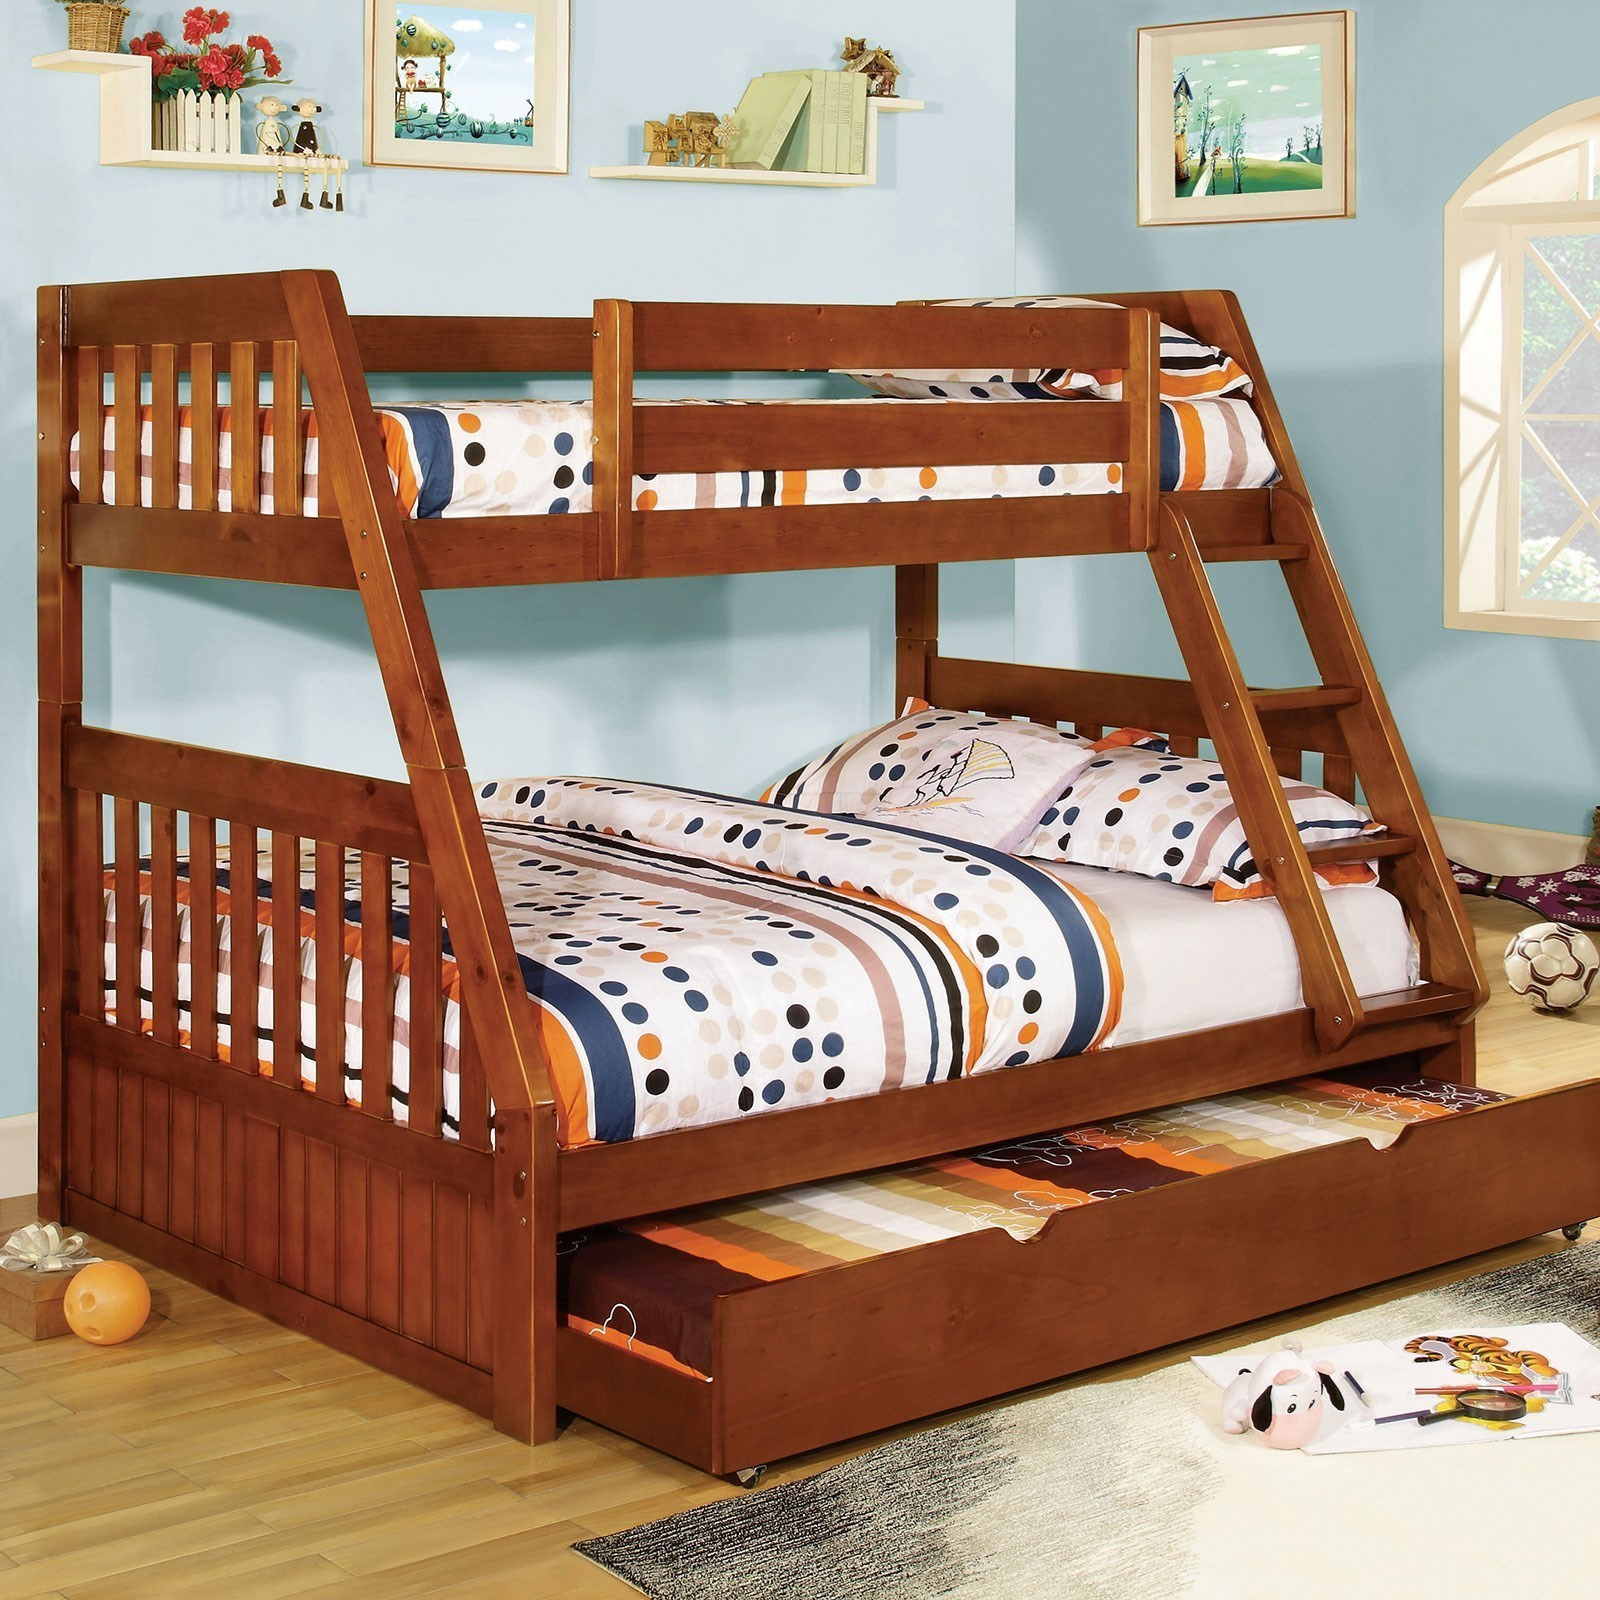 Furniture Stores Canberra Furniture Of America Canberra Cm Bk605a Bed Twin Over Full Bunk